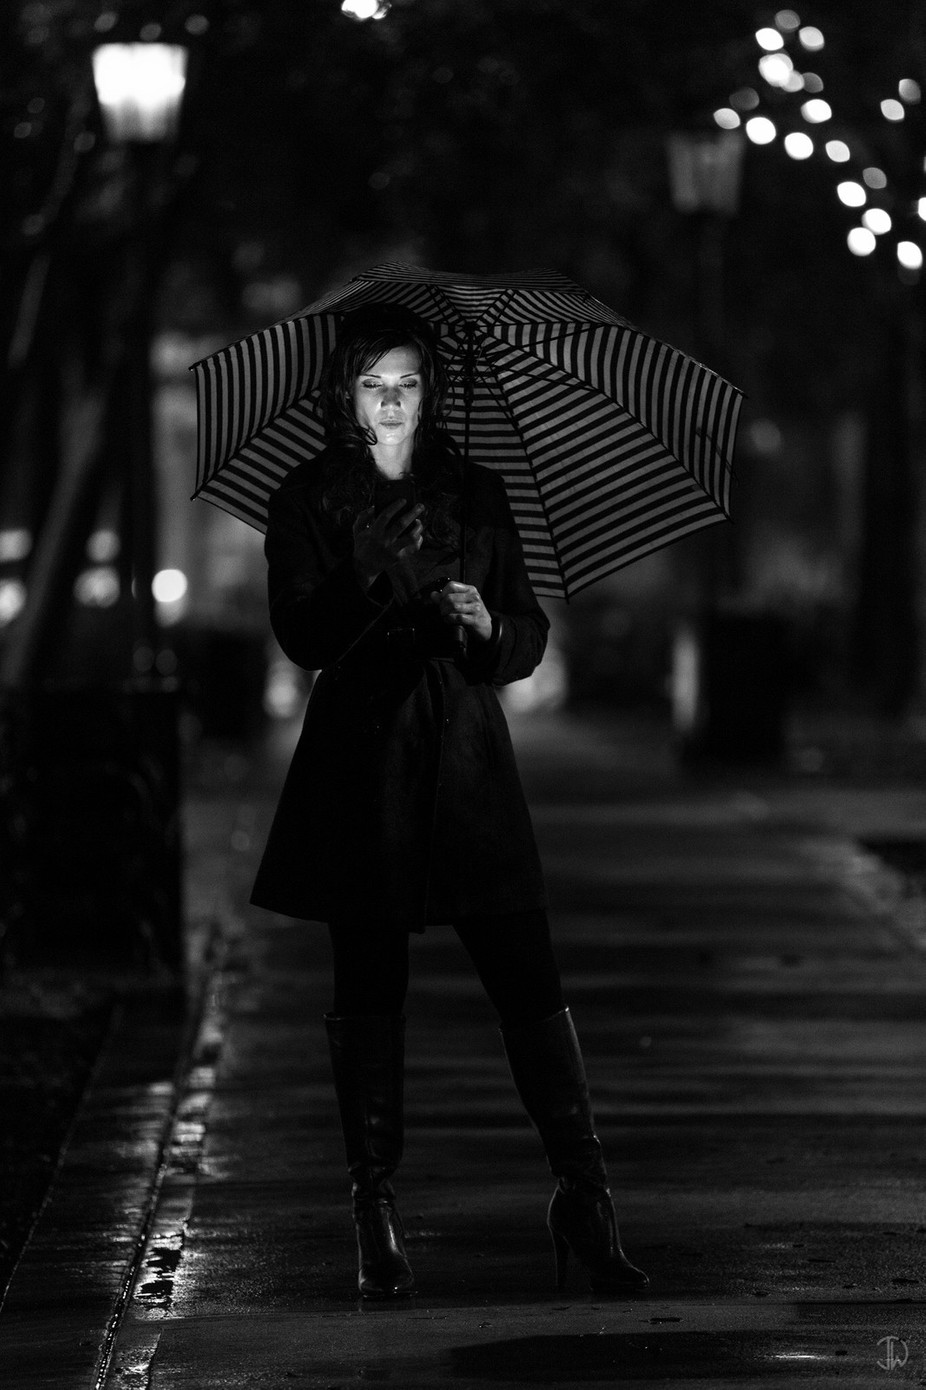 Status Update: Soaked by jonwolding - City Life In Black And White Photo Contest